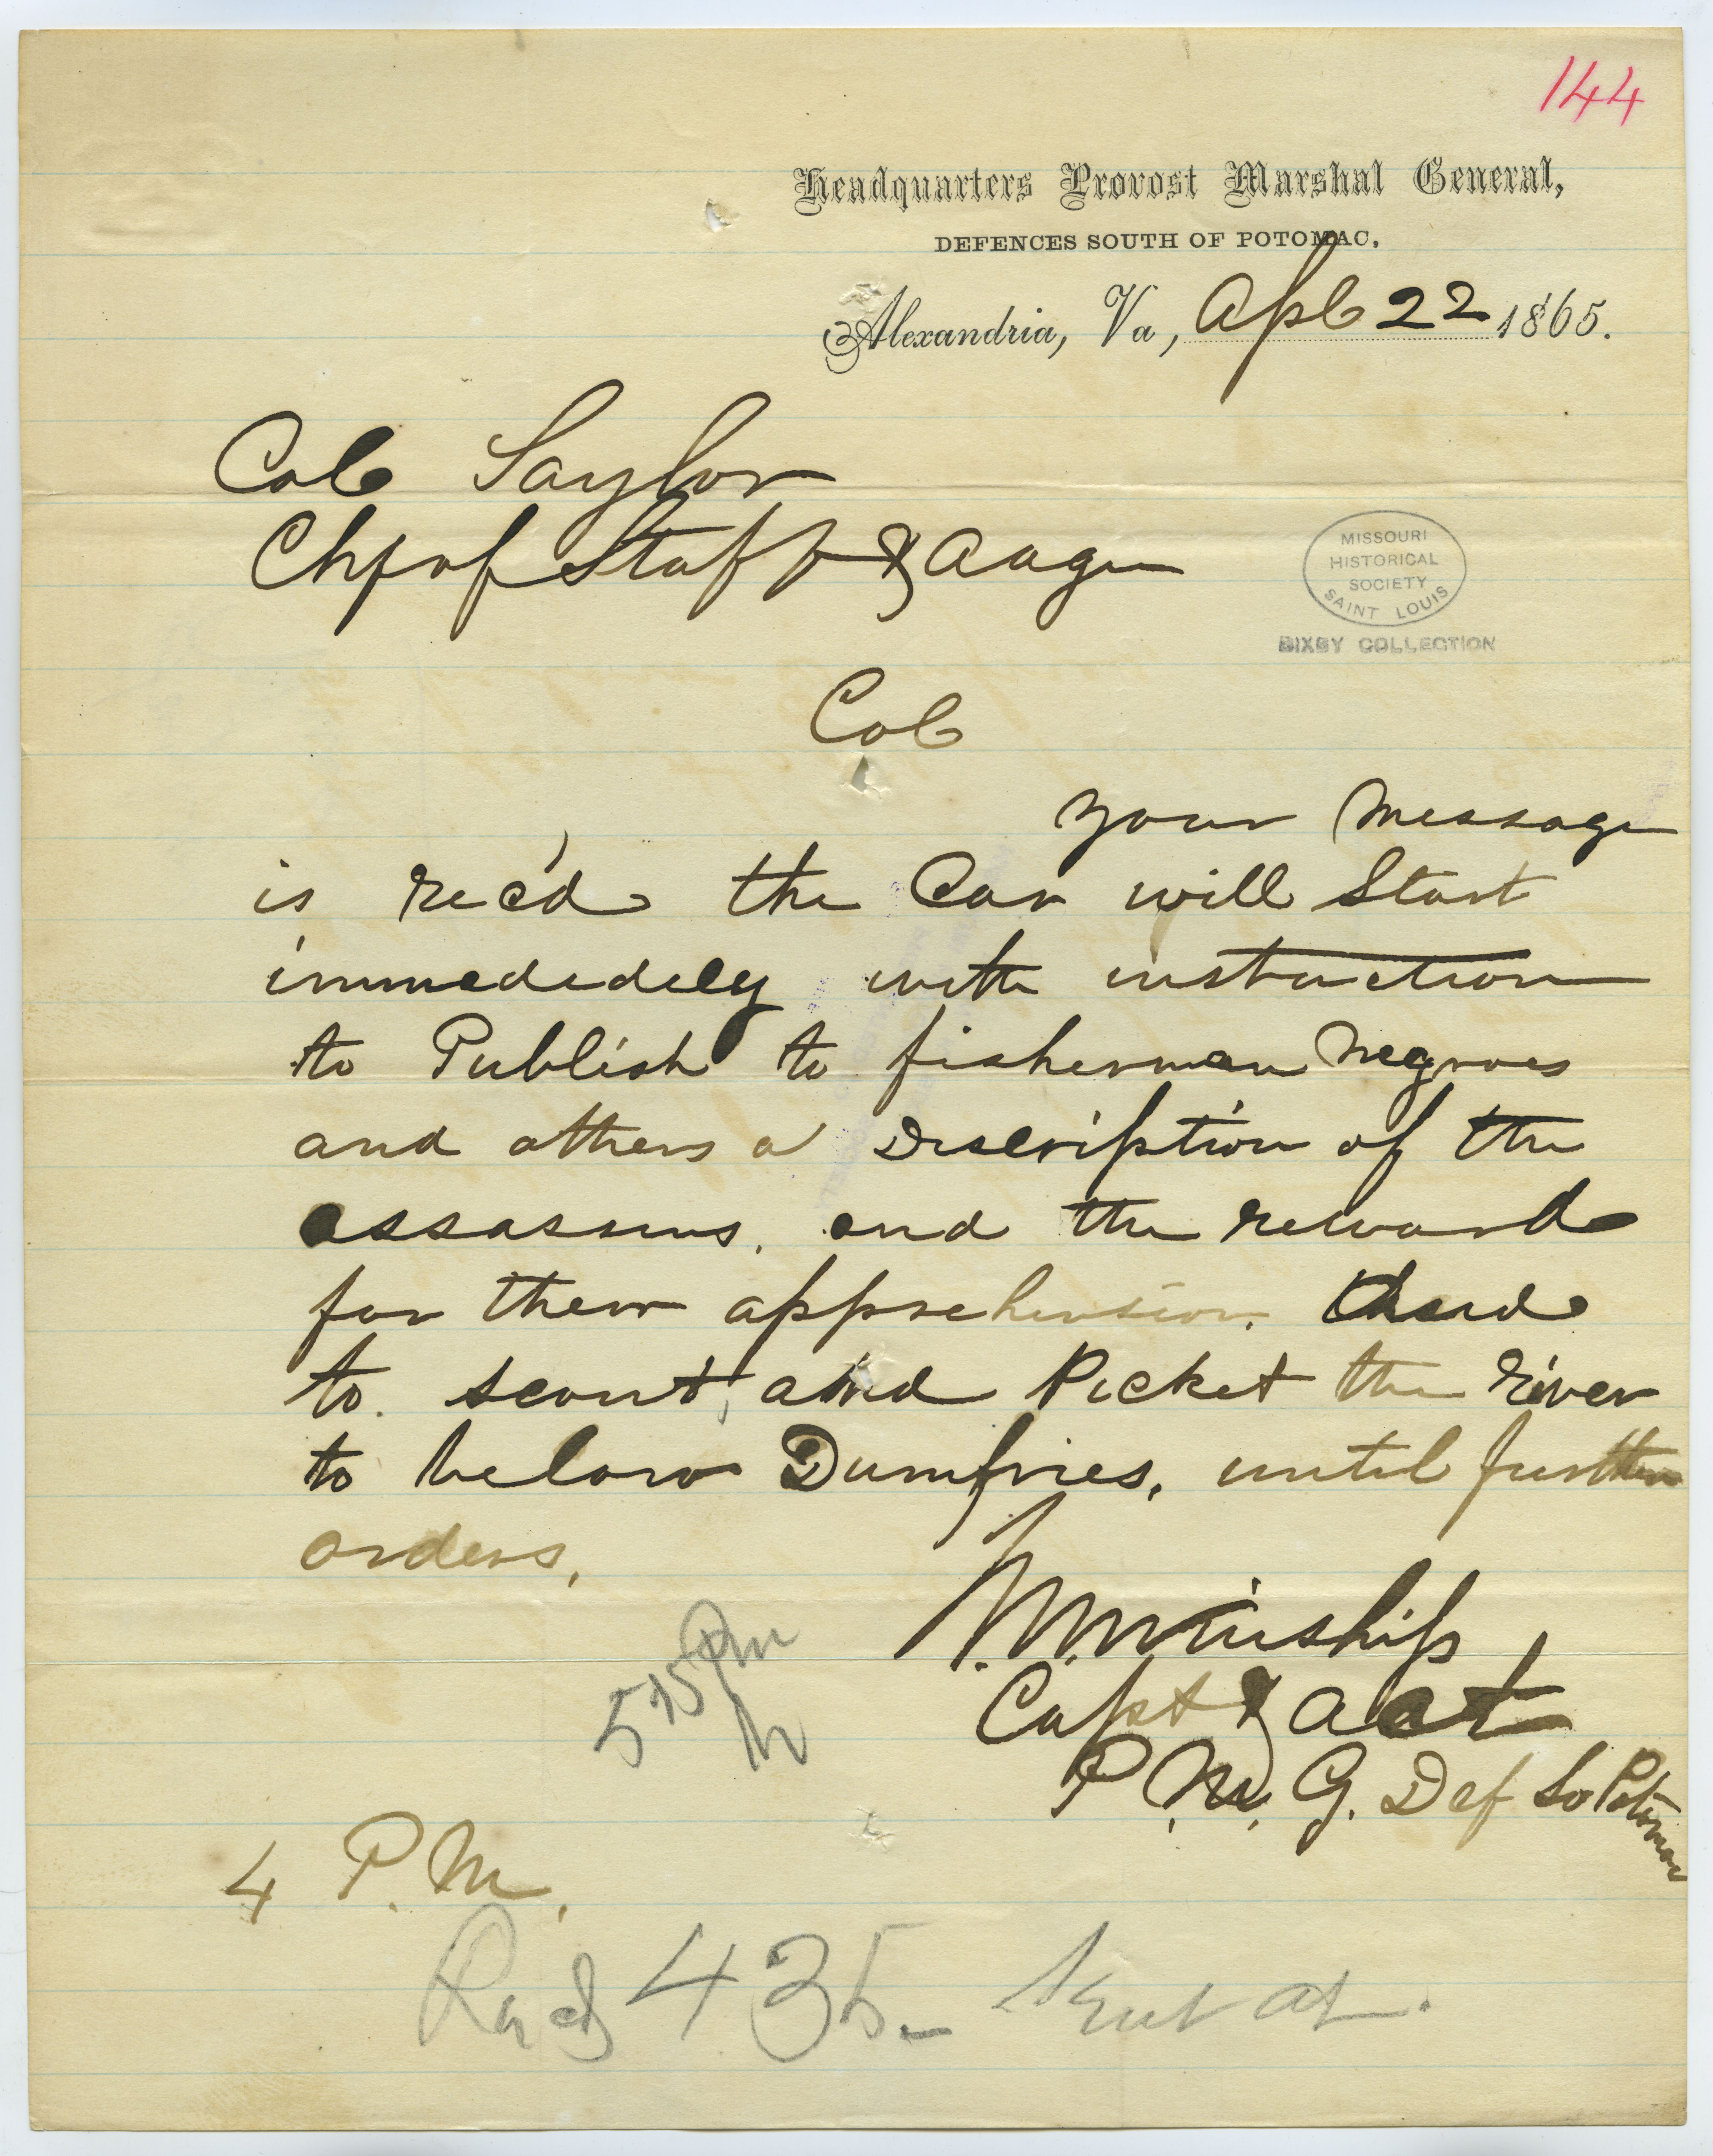 Contemporary copy of telegram of M. Winship, Headquarters Provost Marshal General, Defences South of Potomac, Alexandria, Va., to Col. Taylor, Chf. of Staff and A.A.G., April 22, 1865